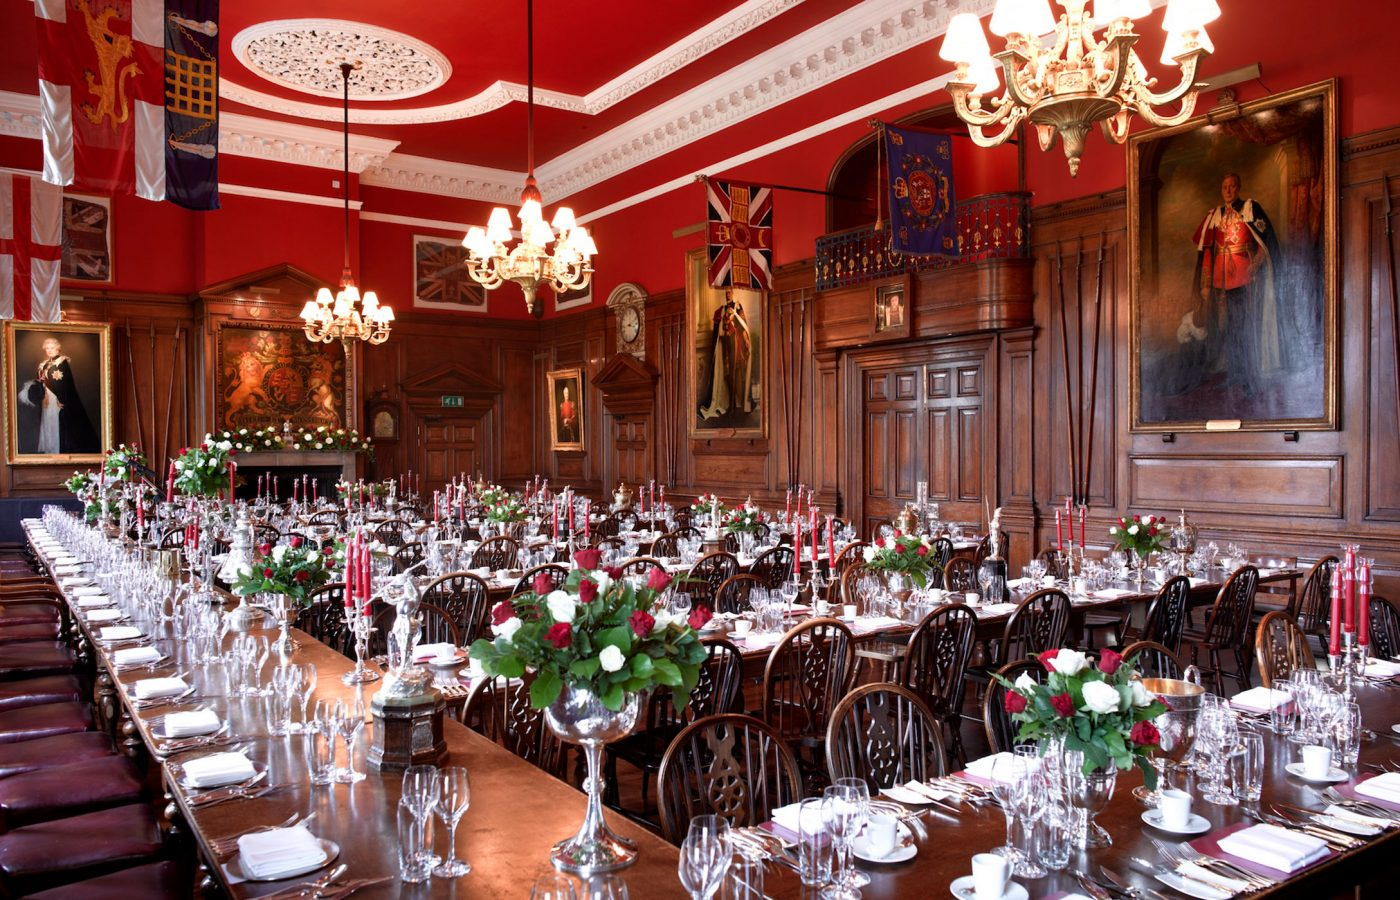 HAC The Long Room